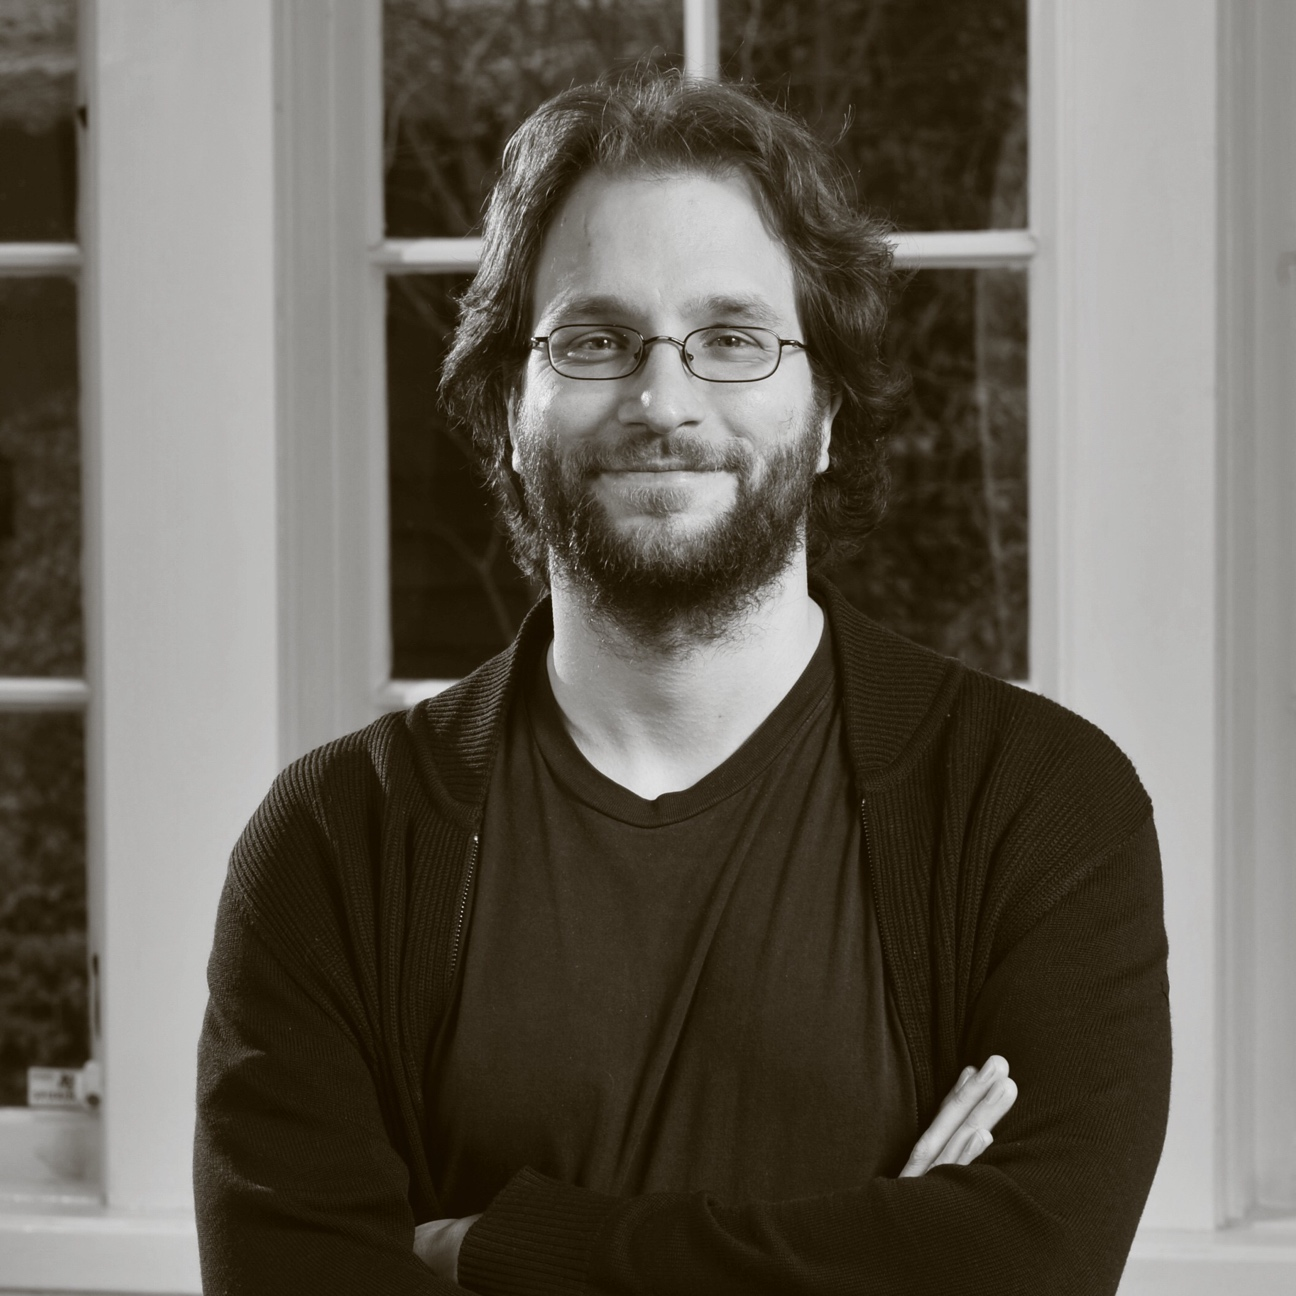 Guest Post: 3 questions for practice-researchers: Falk Hübner